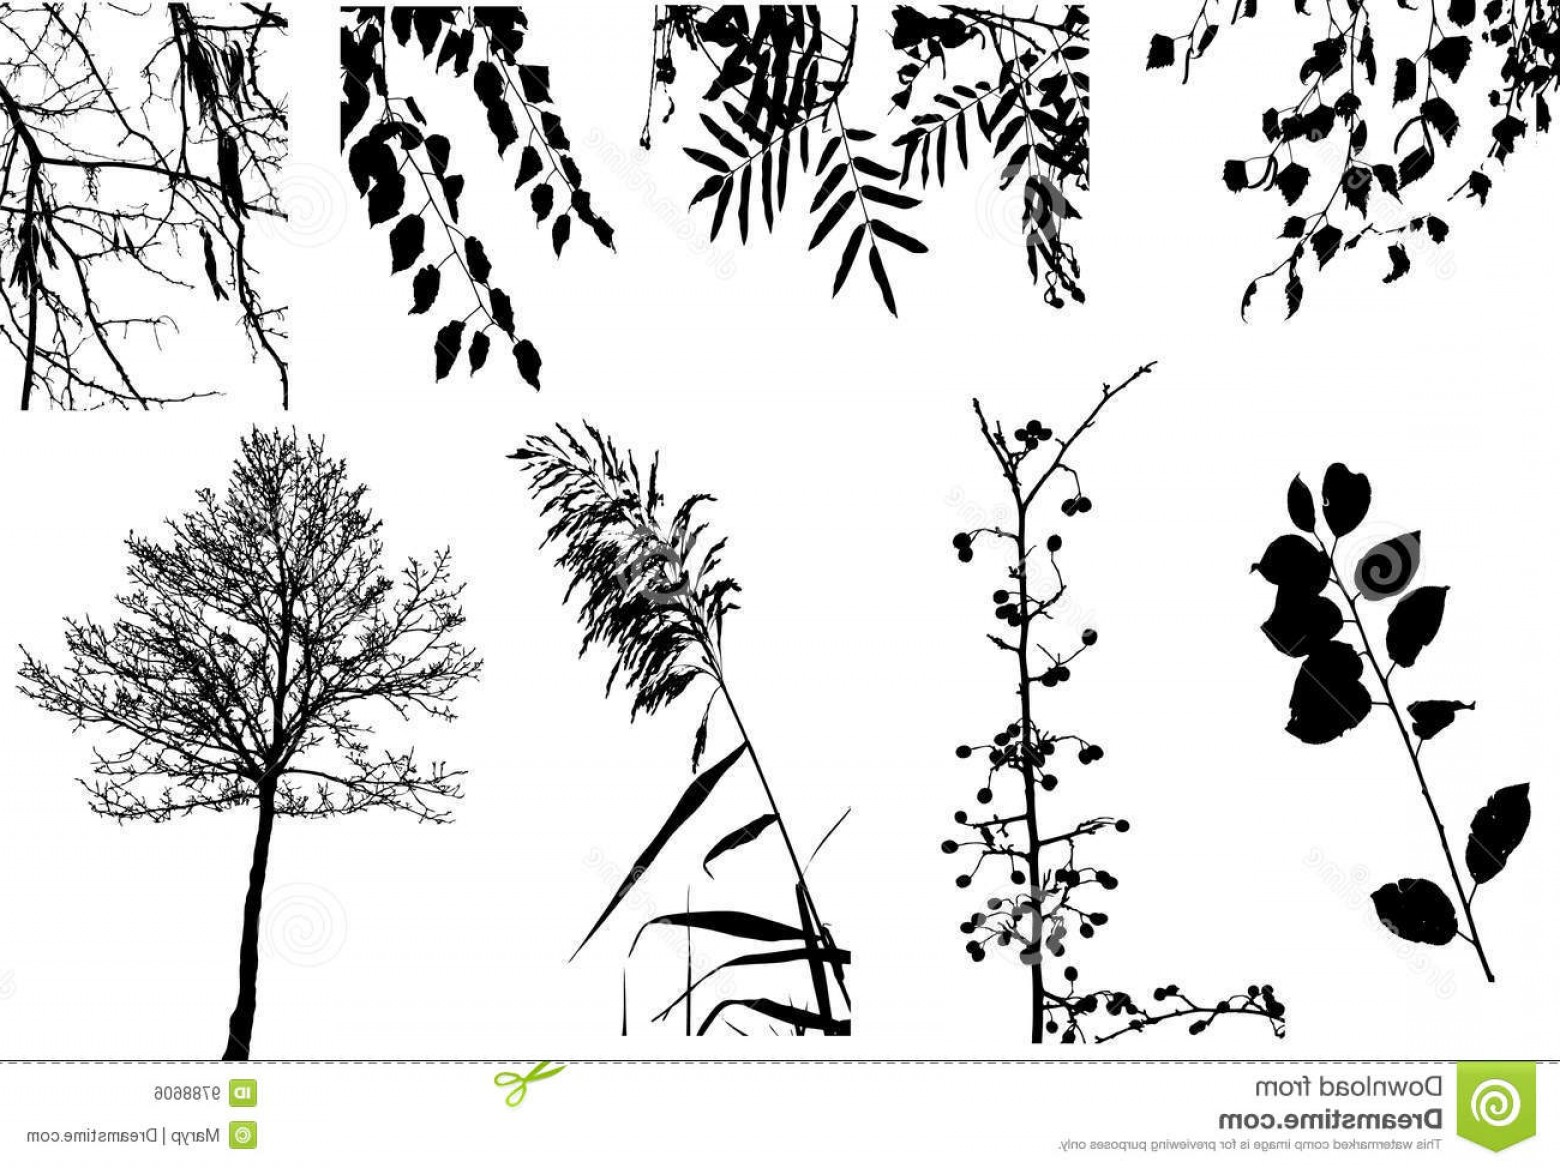 Vector Clip Art Collections: Royalty Free Stock Image Vector Clipart Collection Trees Bushes Image